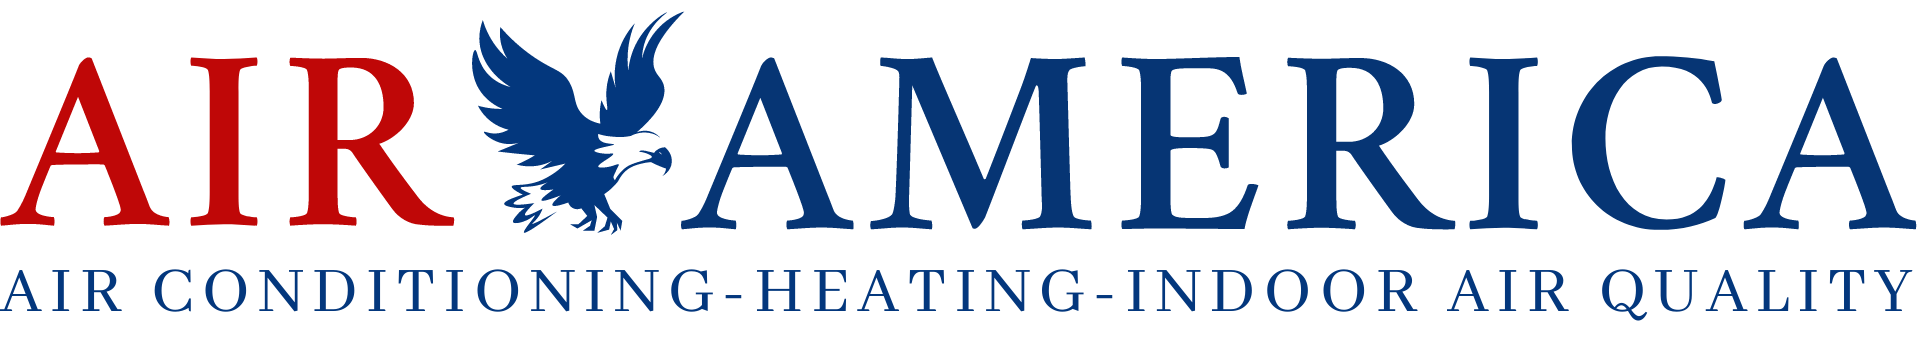 Air America Cooling & Heating AC or HVAC Specialists